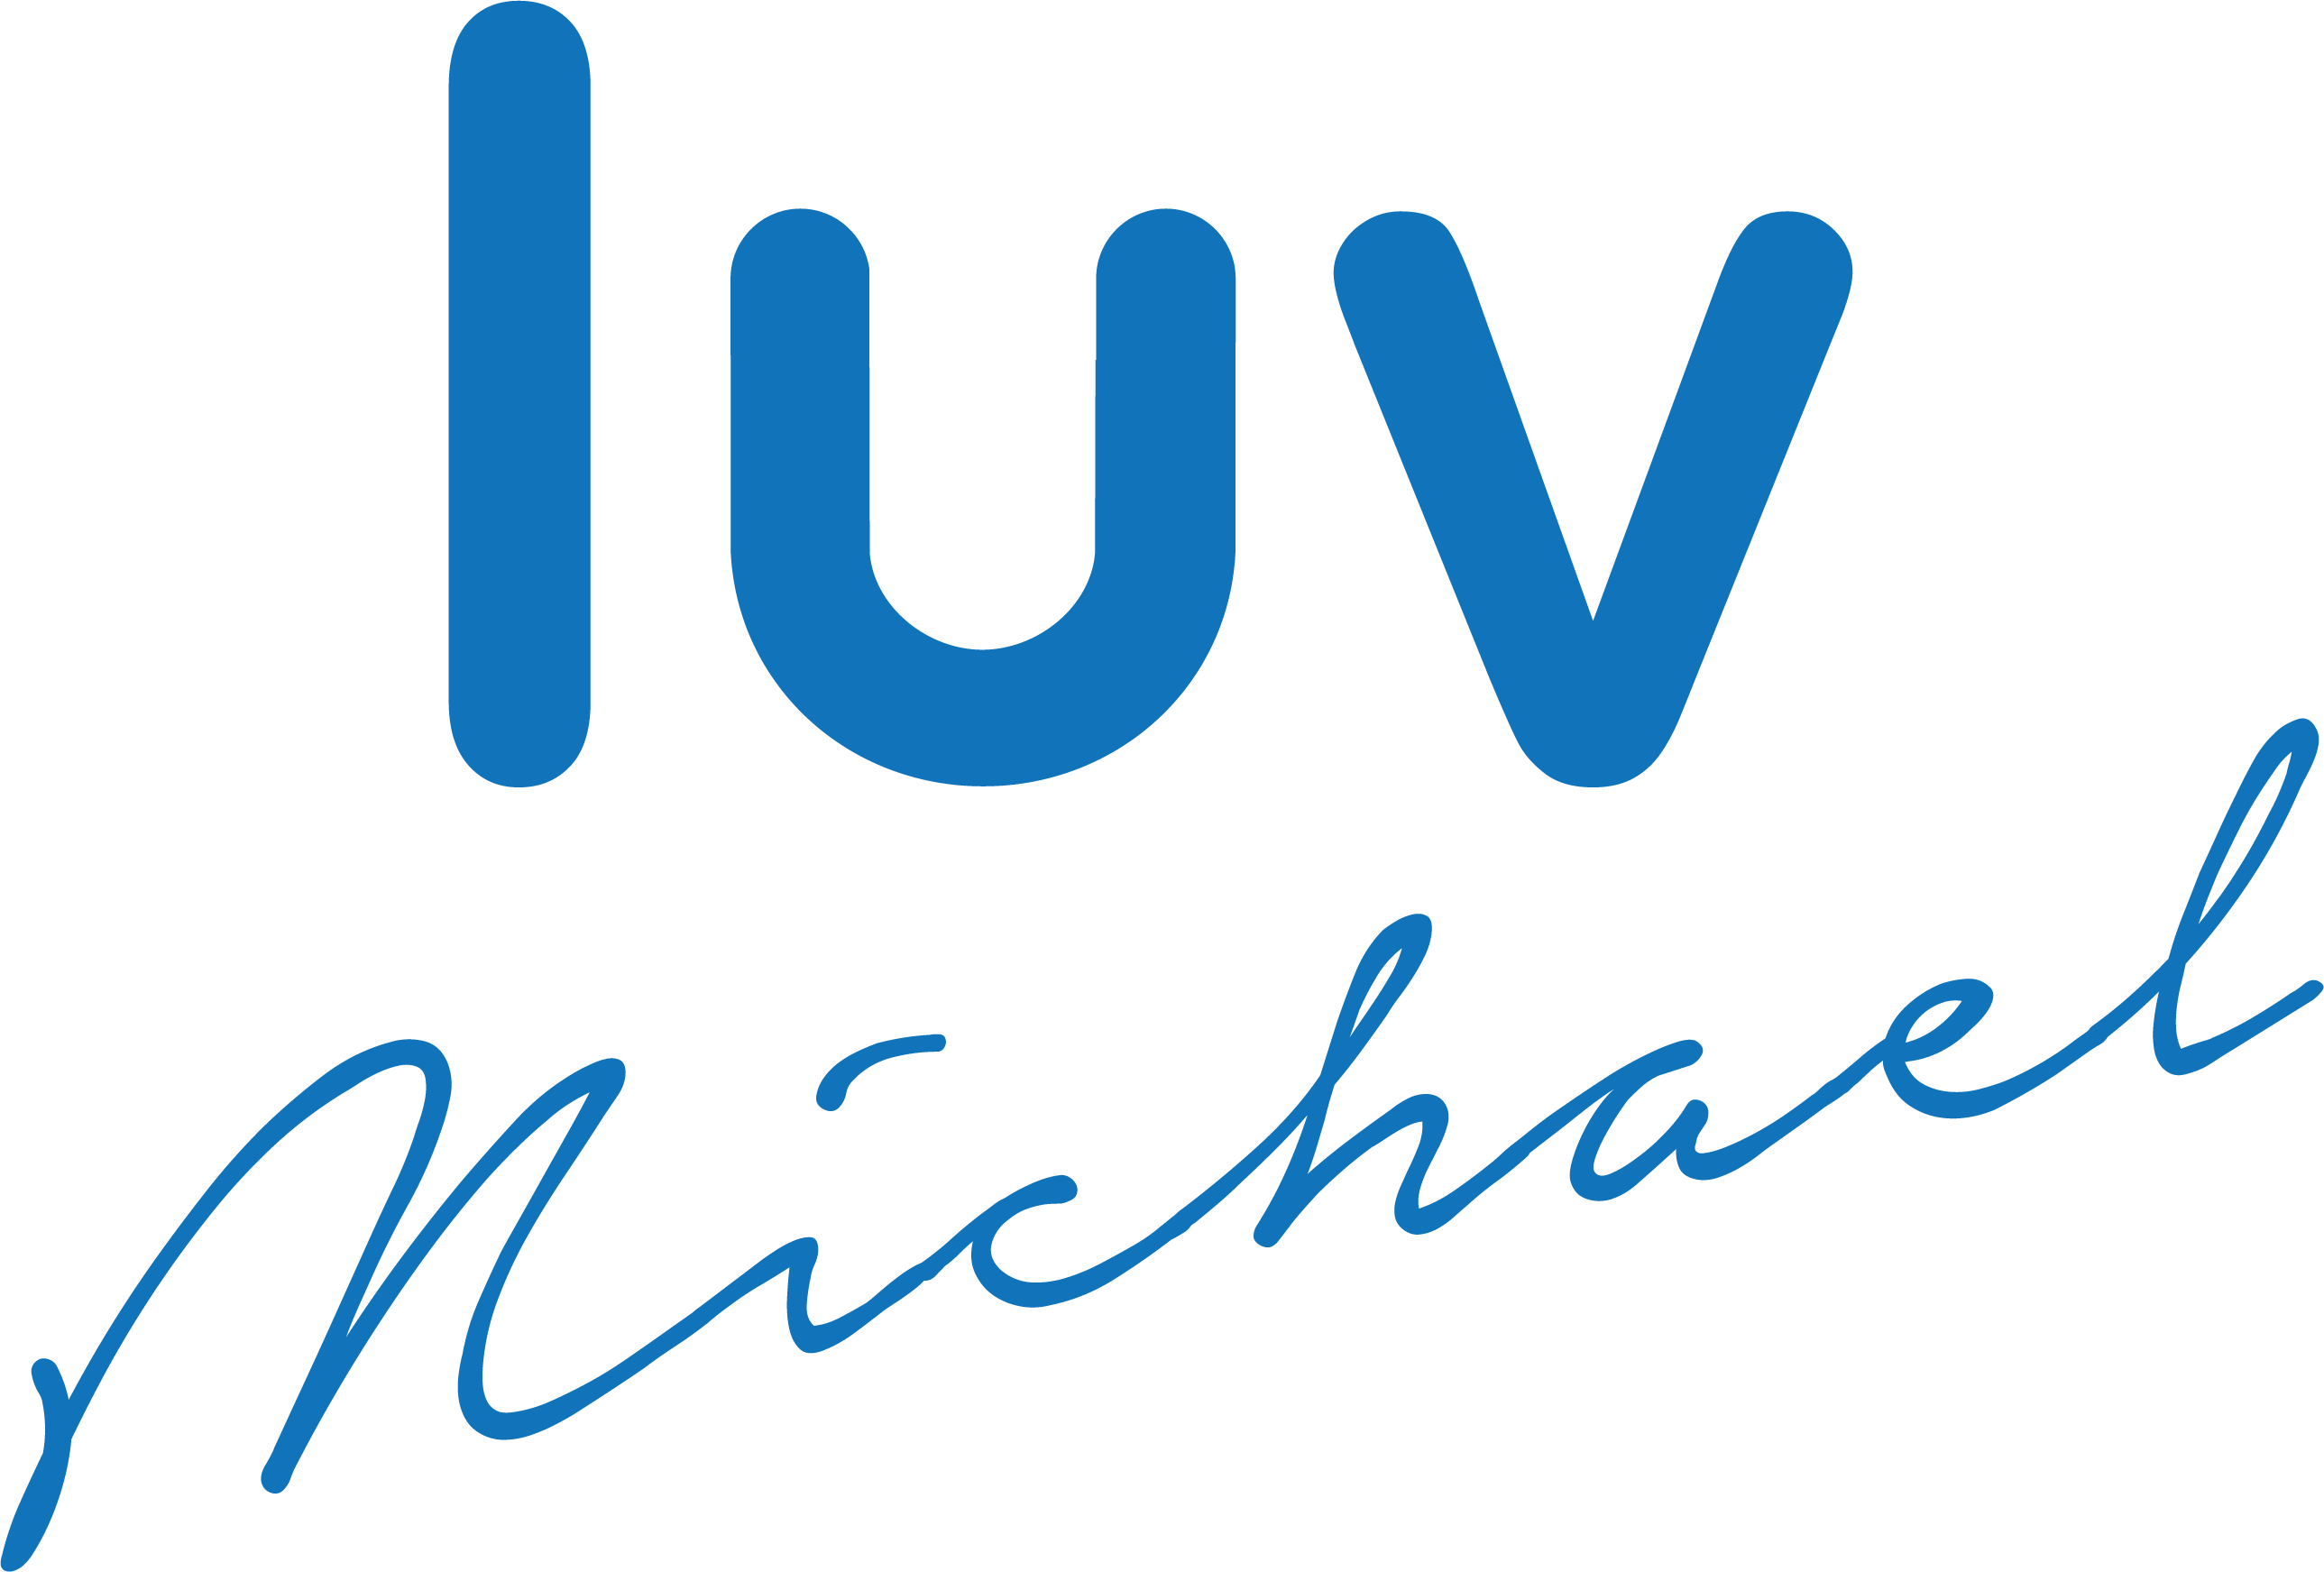 Community Service Organization Luv Michael: Virtual Volunteer to Benefit Autistic Adults